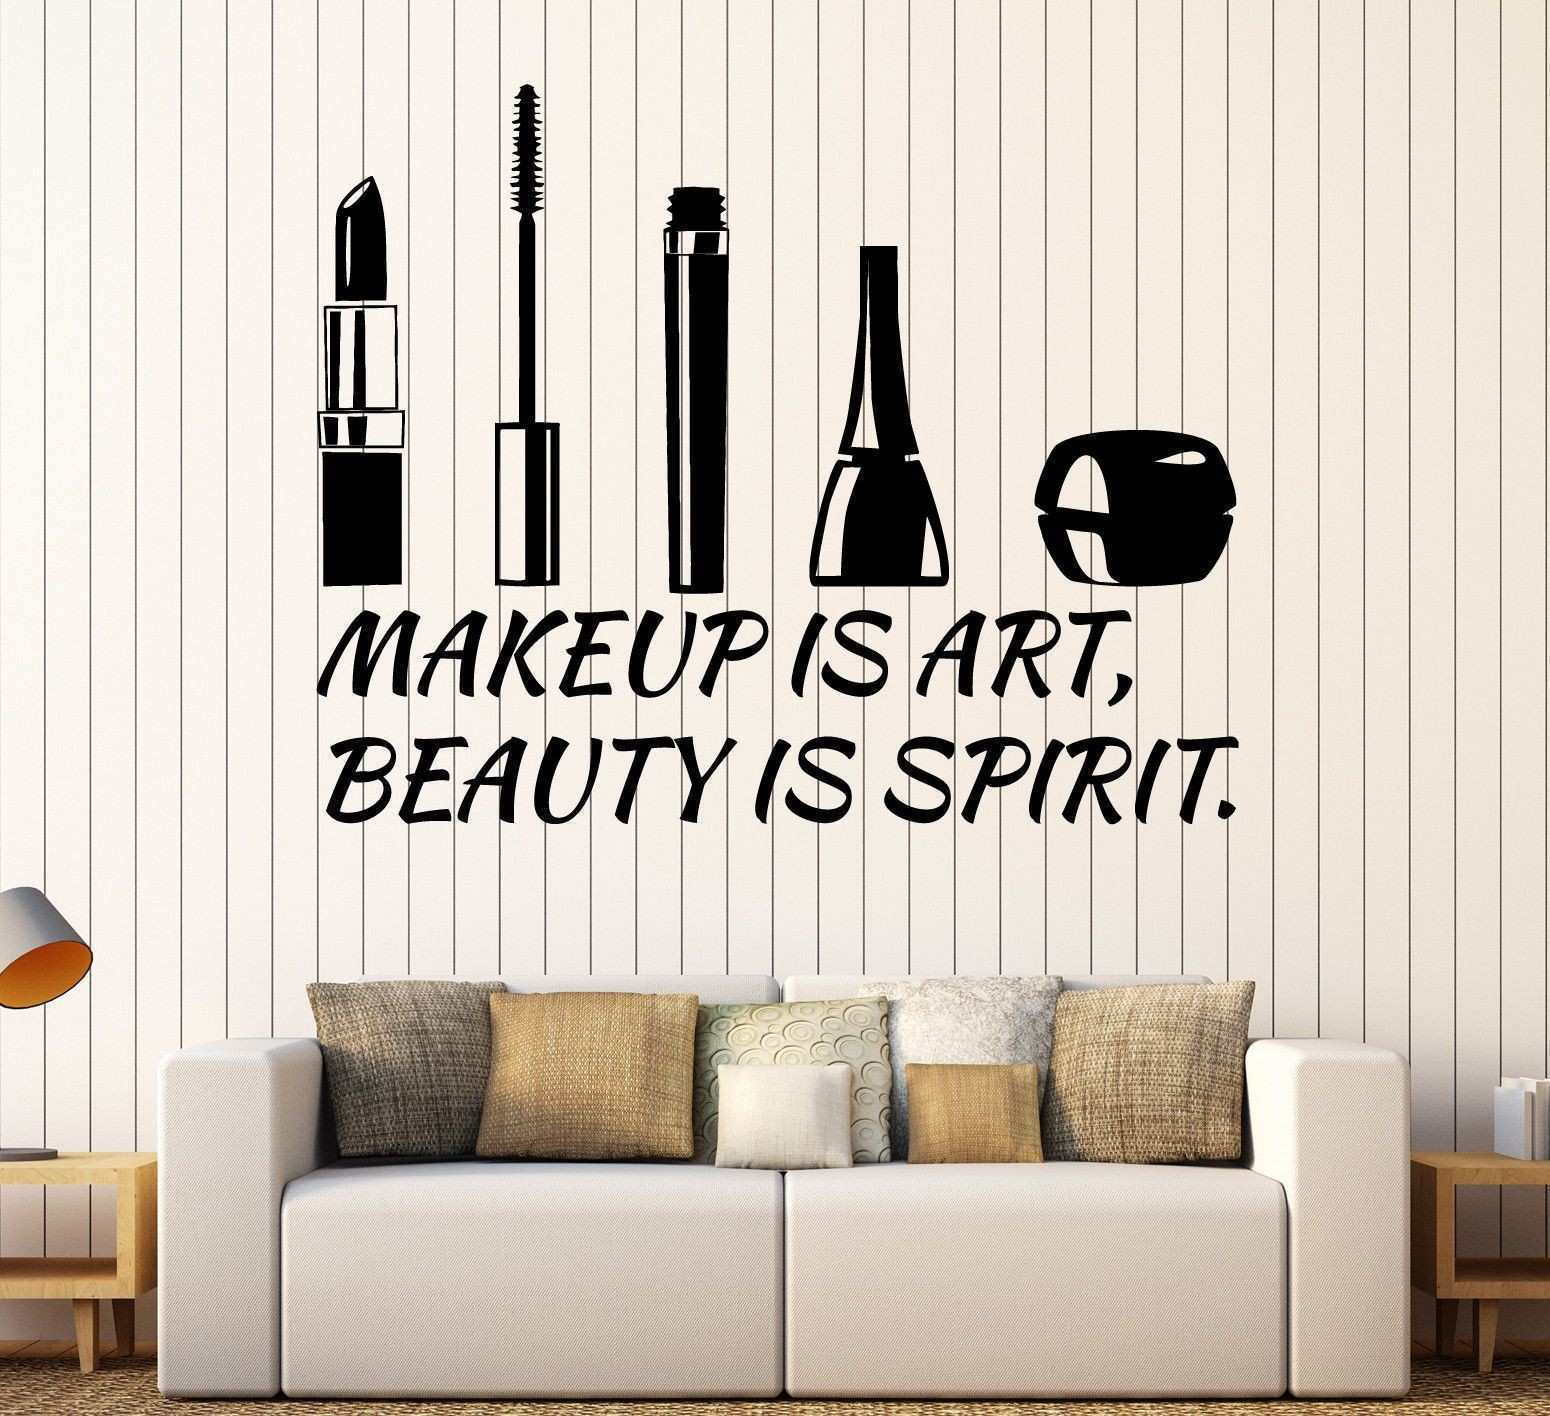 Vinyl Wall Decal Beauty Salon Quote Cosmetics Makeup Stickers Unique